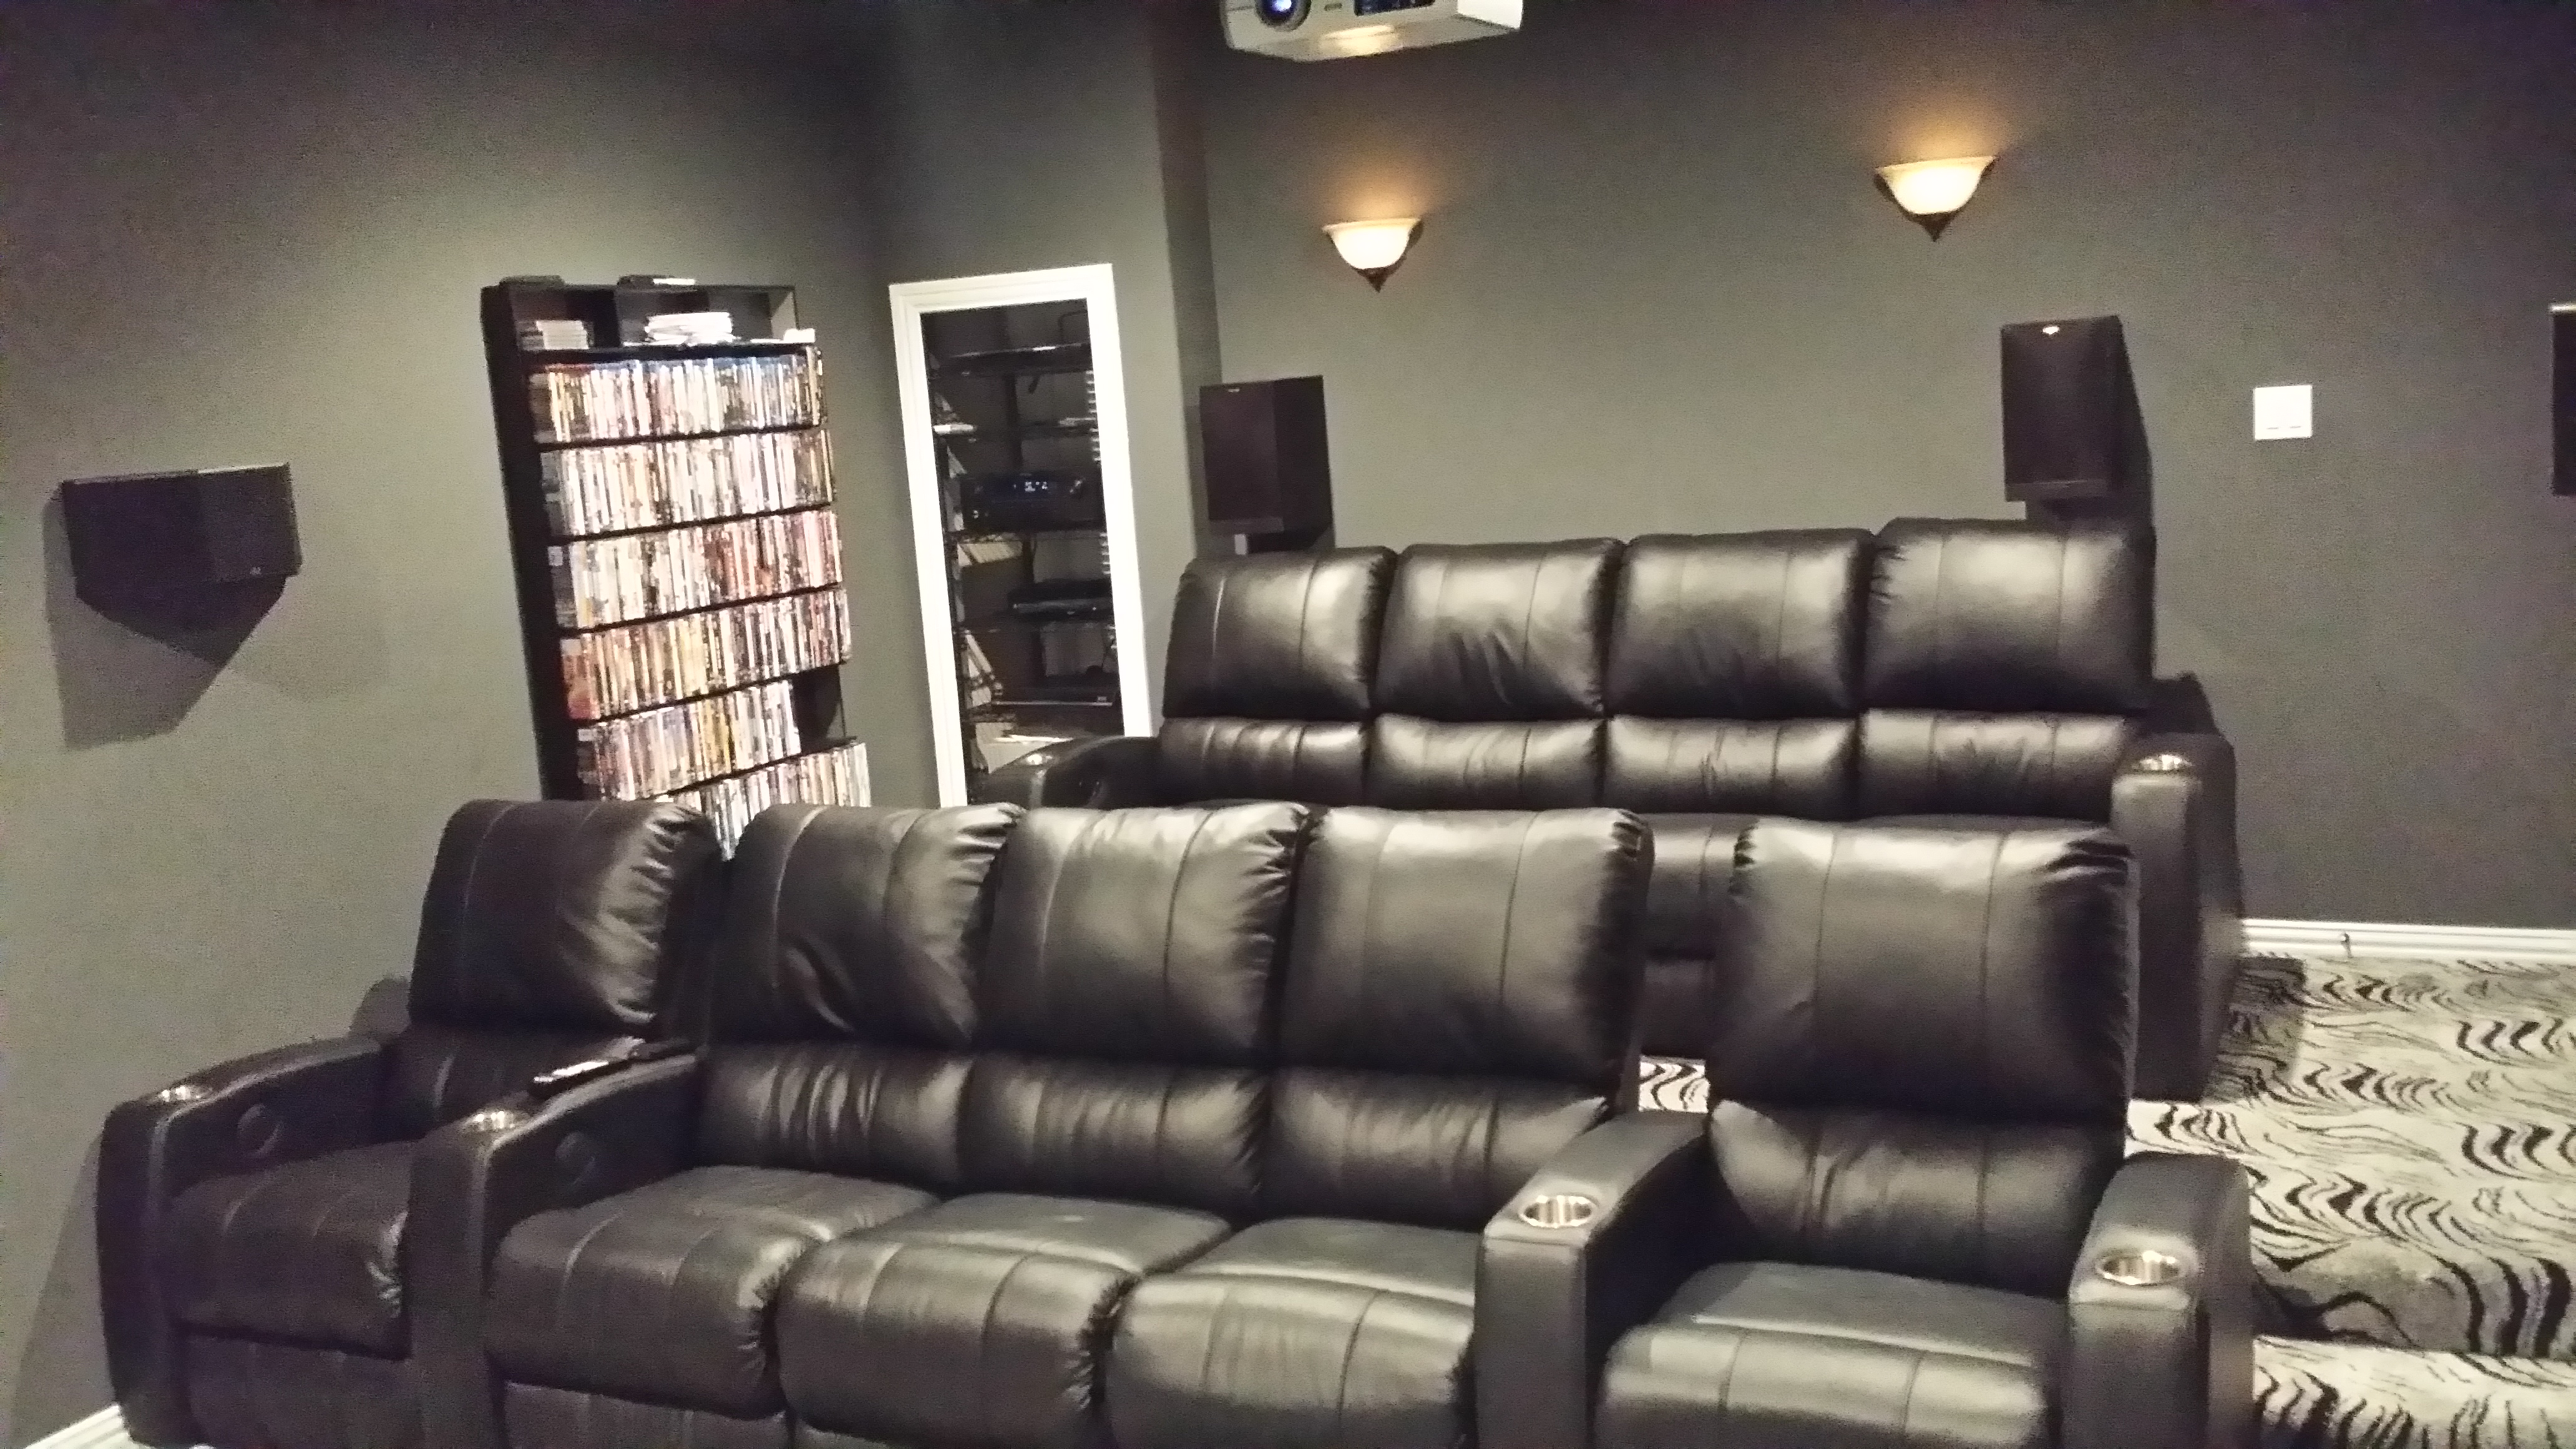 Movie Chairs For Home Theaters Palliser Mccabe 39s Theater And Living